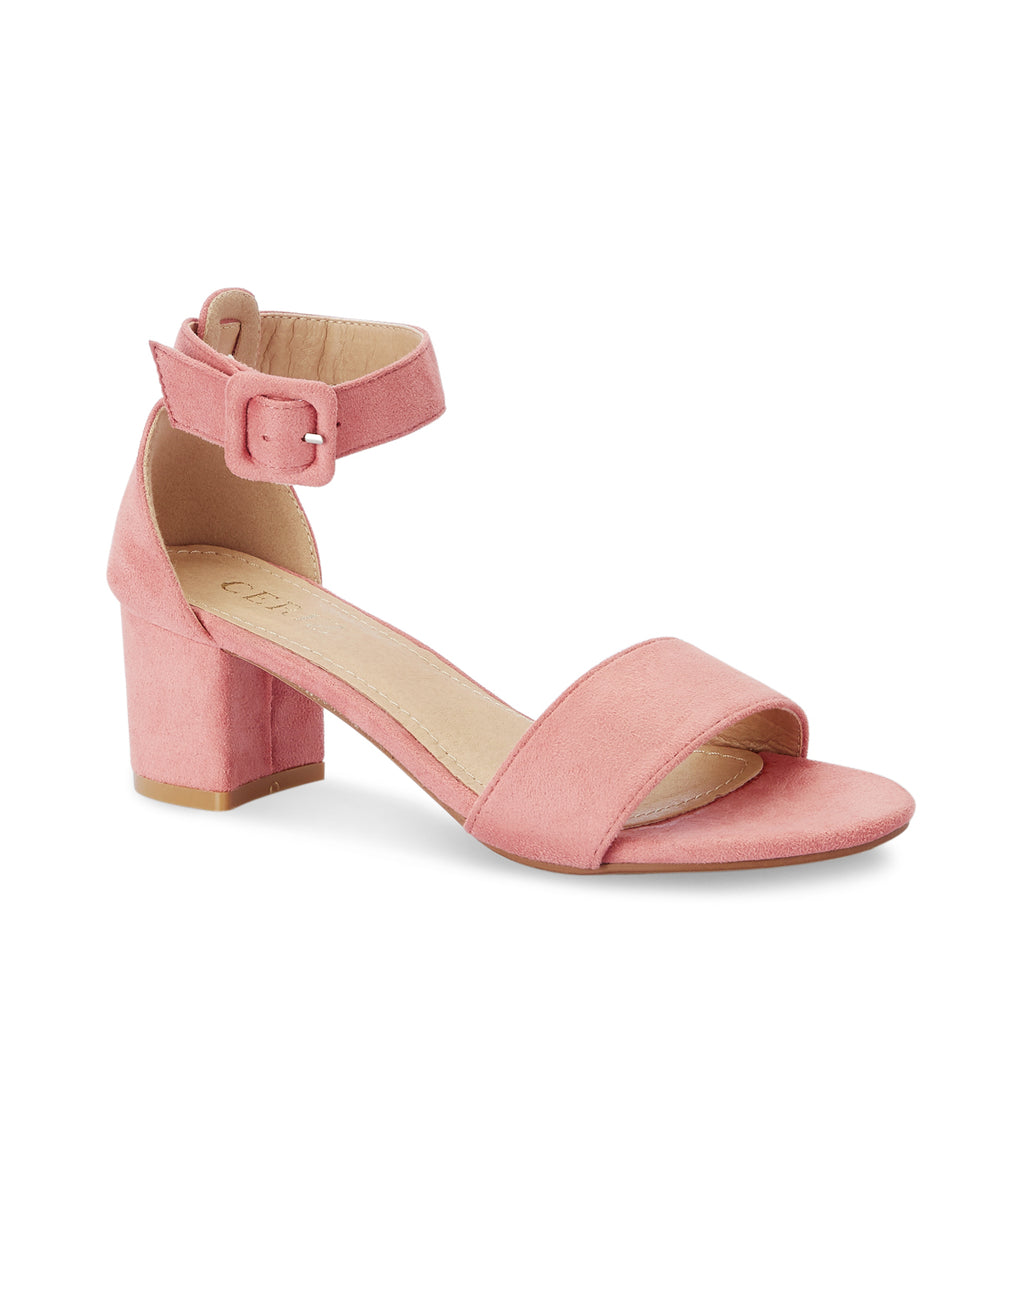 Anouk Pink Block Heel Sandals